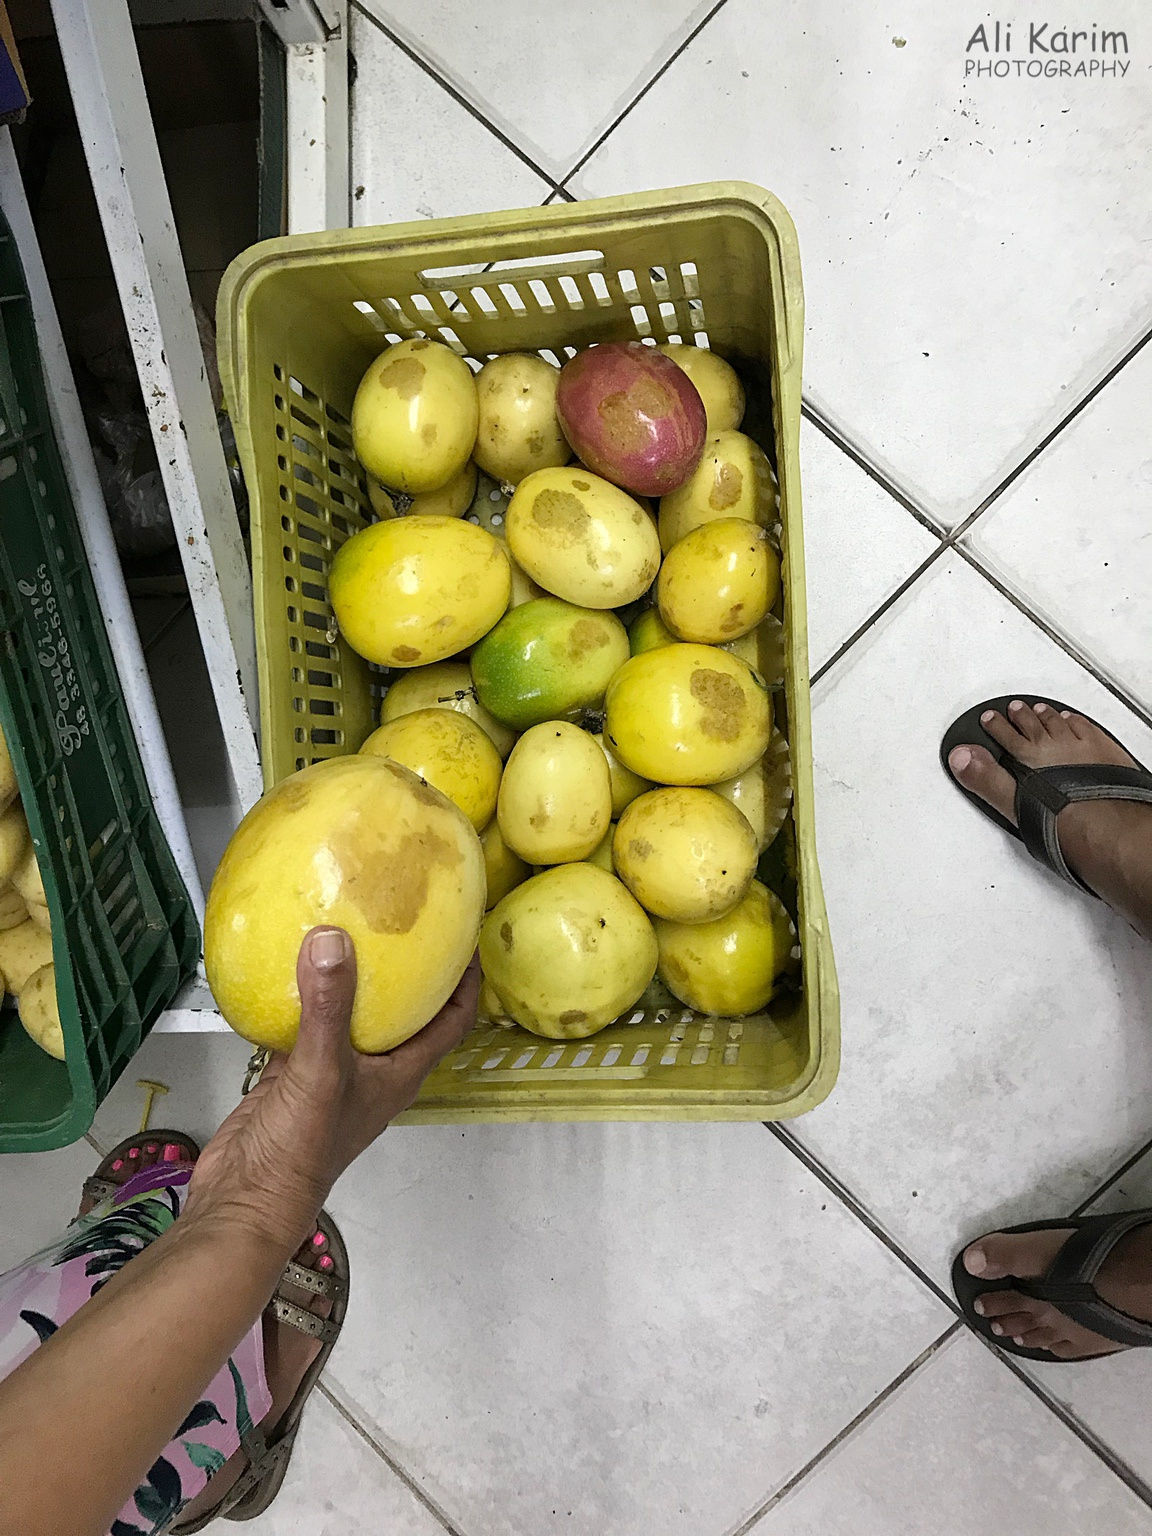 Florianópolis, Brazil Check out the size of the passion fruit